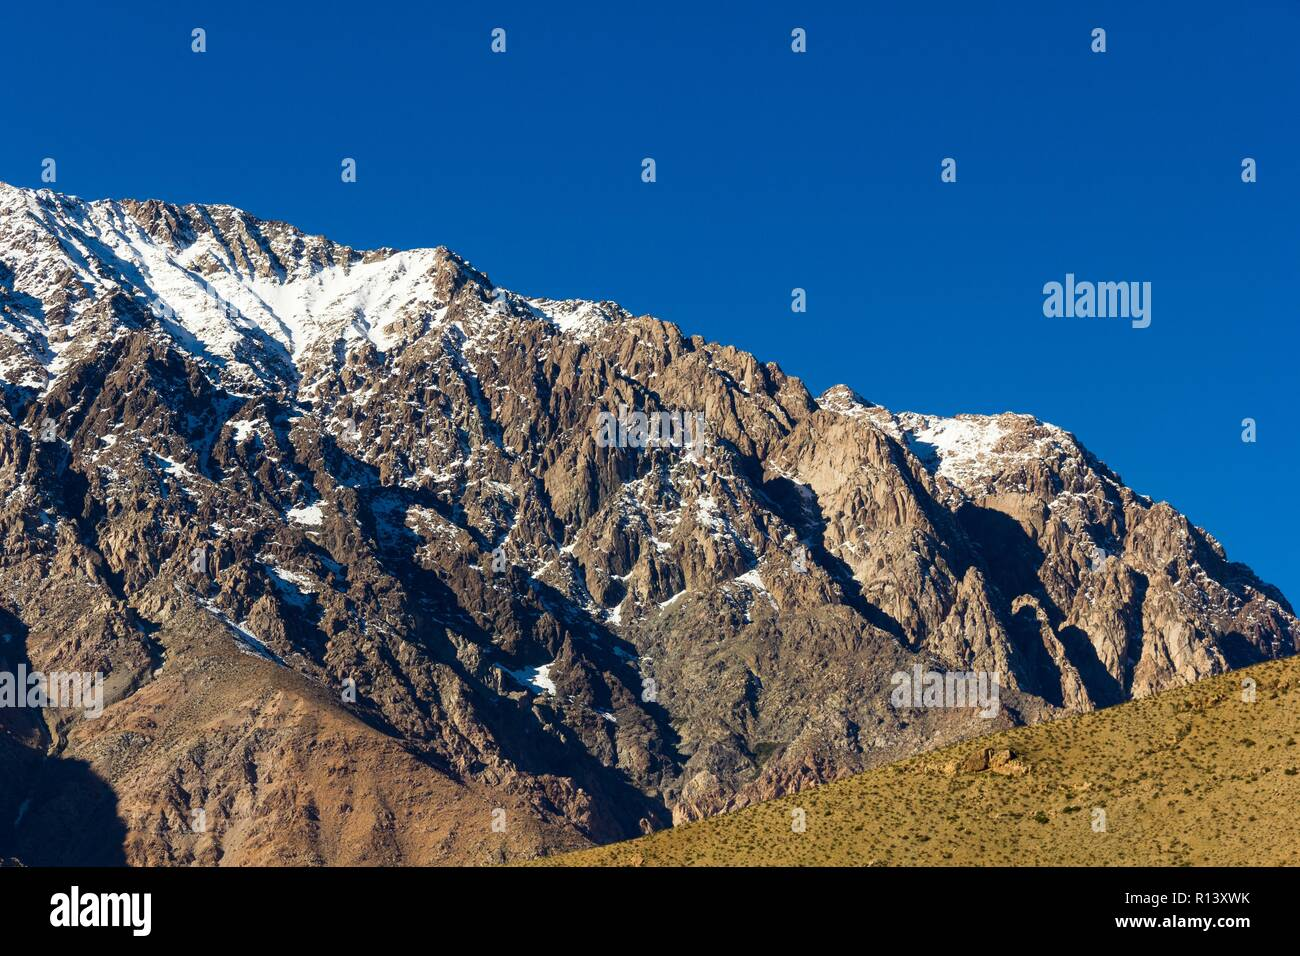 Snow peaks of Andes mountain range under intense blue sky in Elqui Valley, Chile. Exploration hike, trekking adventure concept - Stock Image